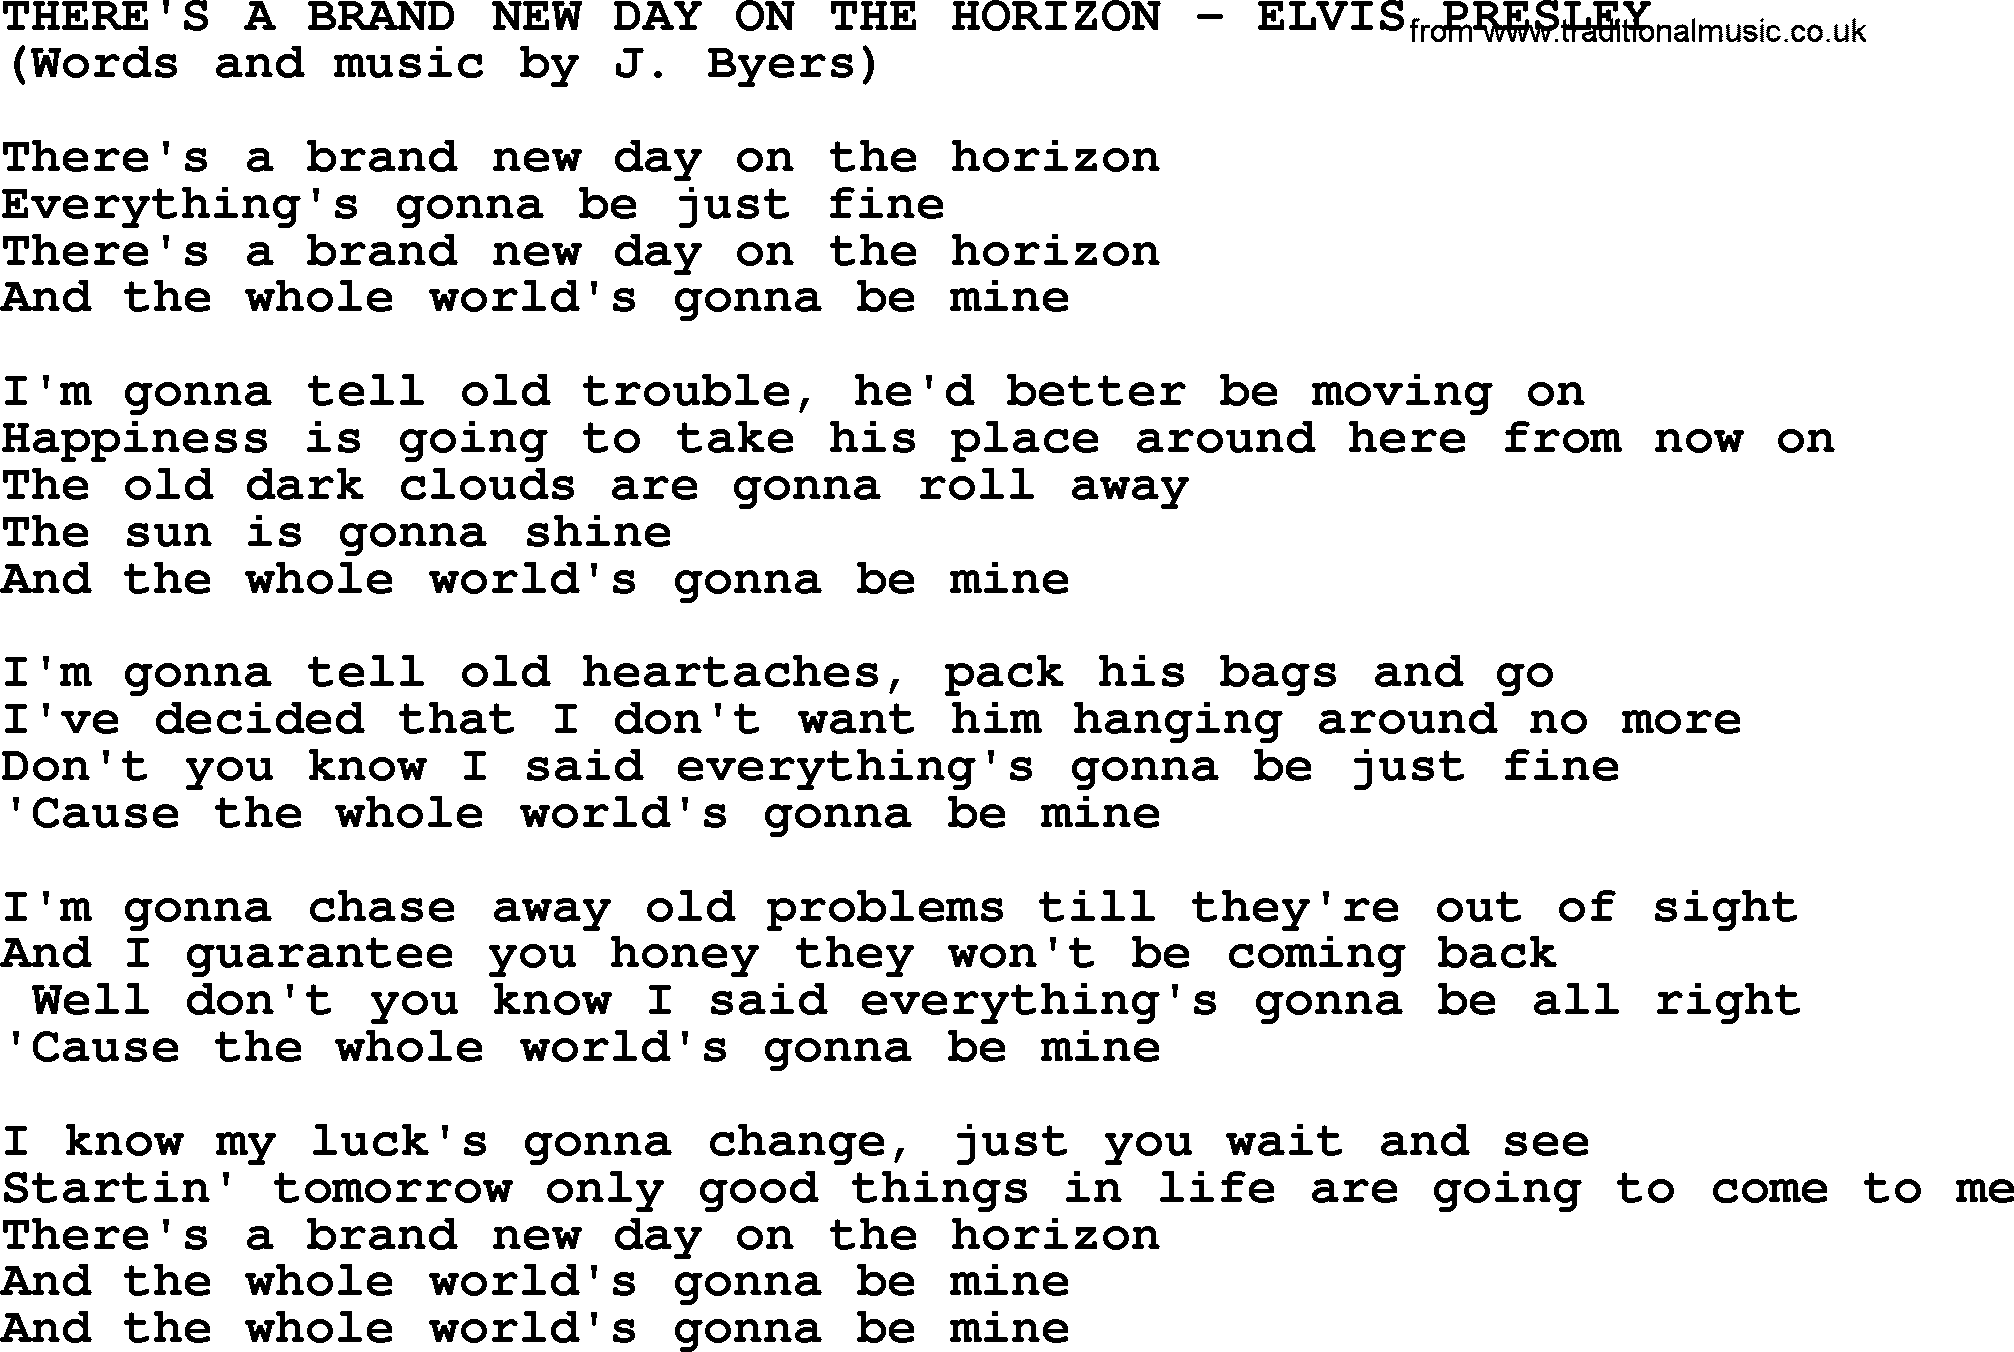 Theres A Brand New Day On The Horizon By Elvis Presley Lyrics